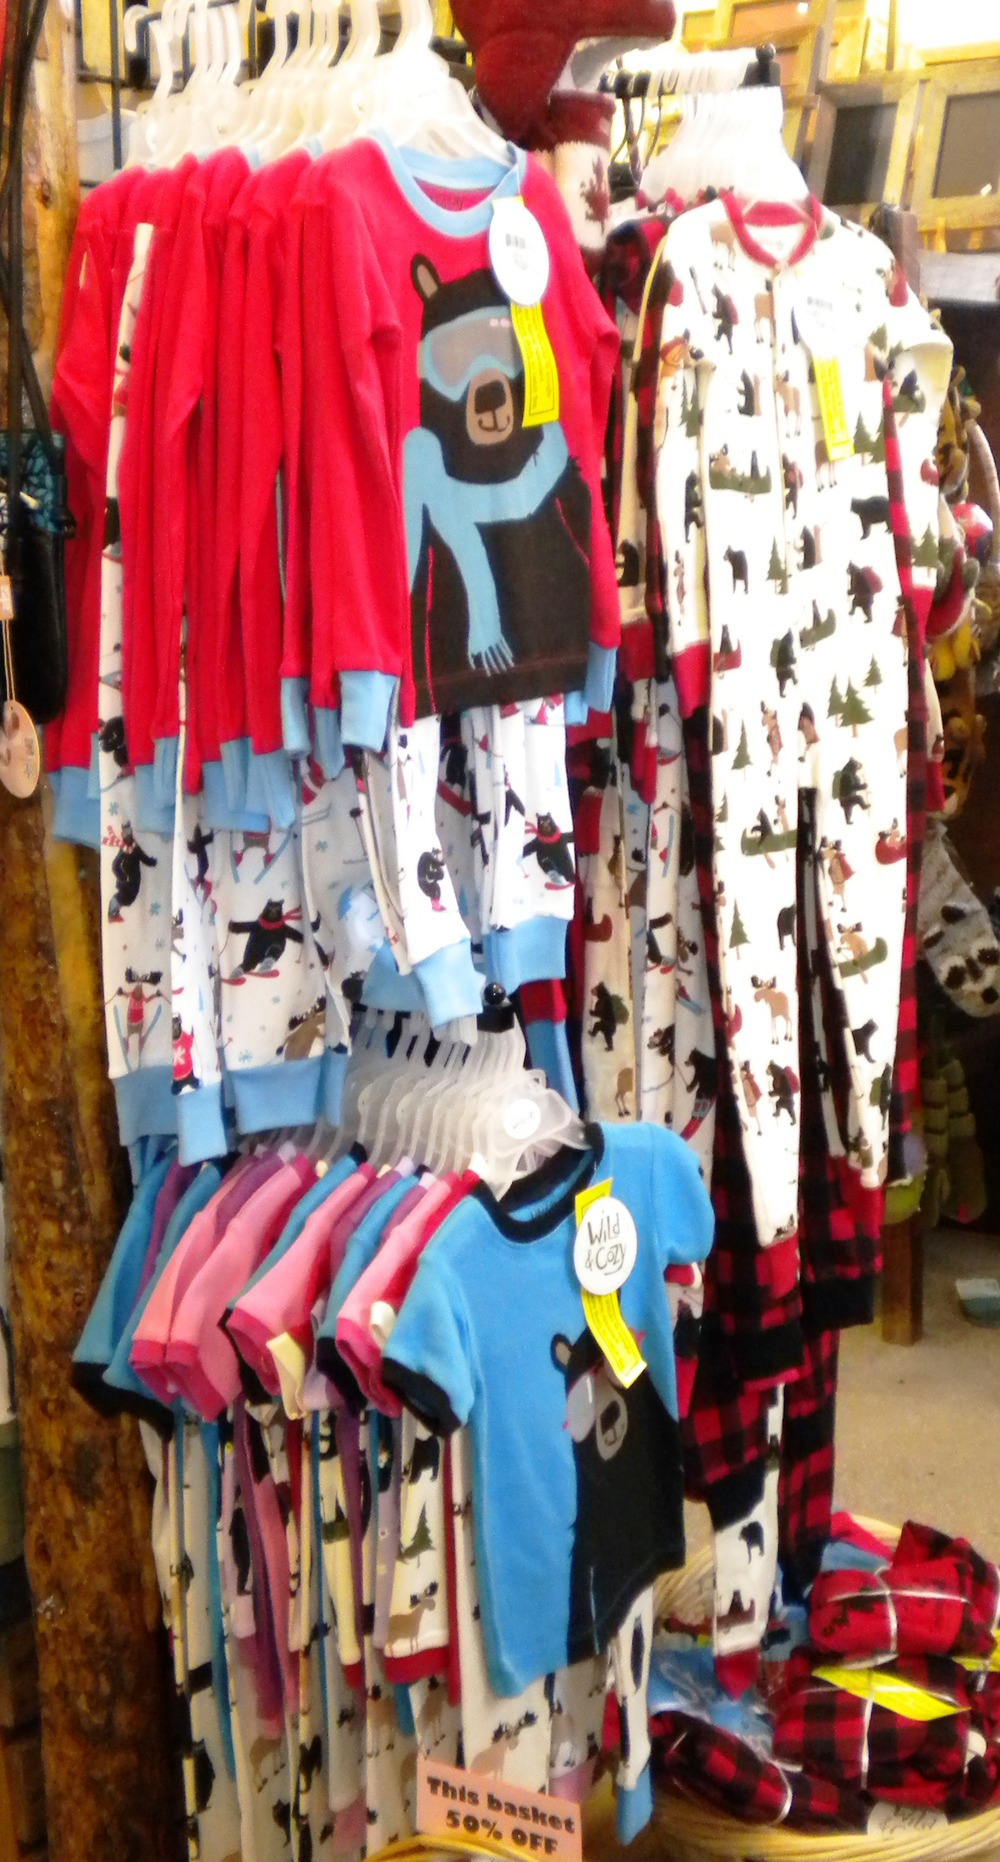 For the little ones in your life, we have cozy and cute pyjamas from Hatley.